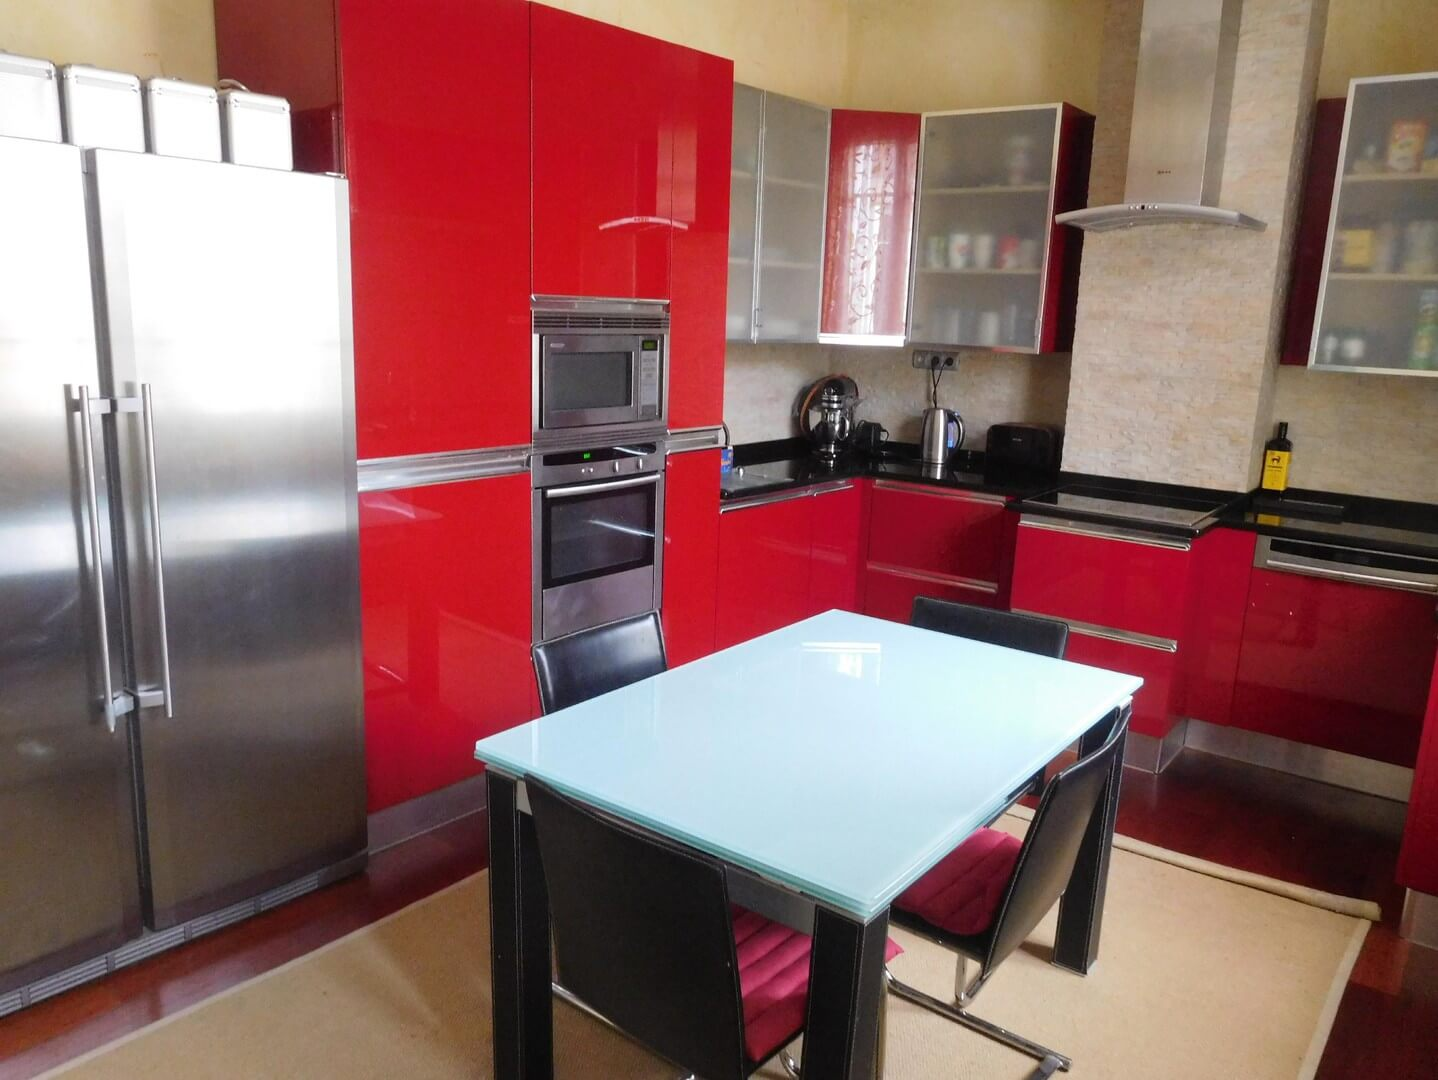 Homki - Vente Appartement  de 126.0 m² à Toulouse 31400